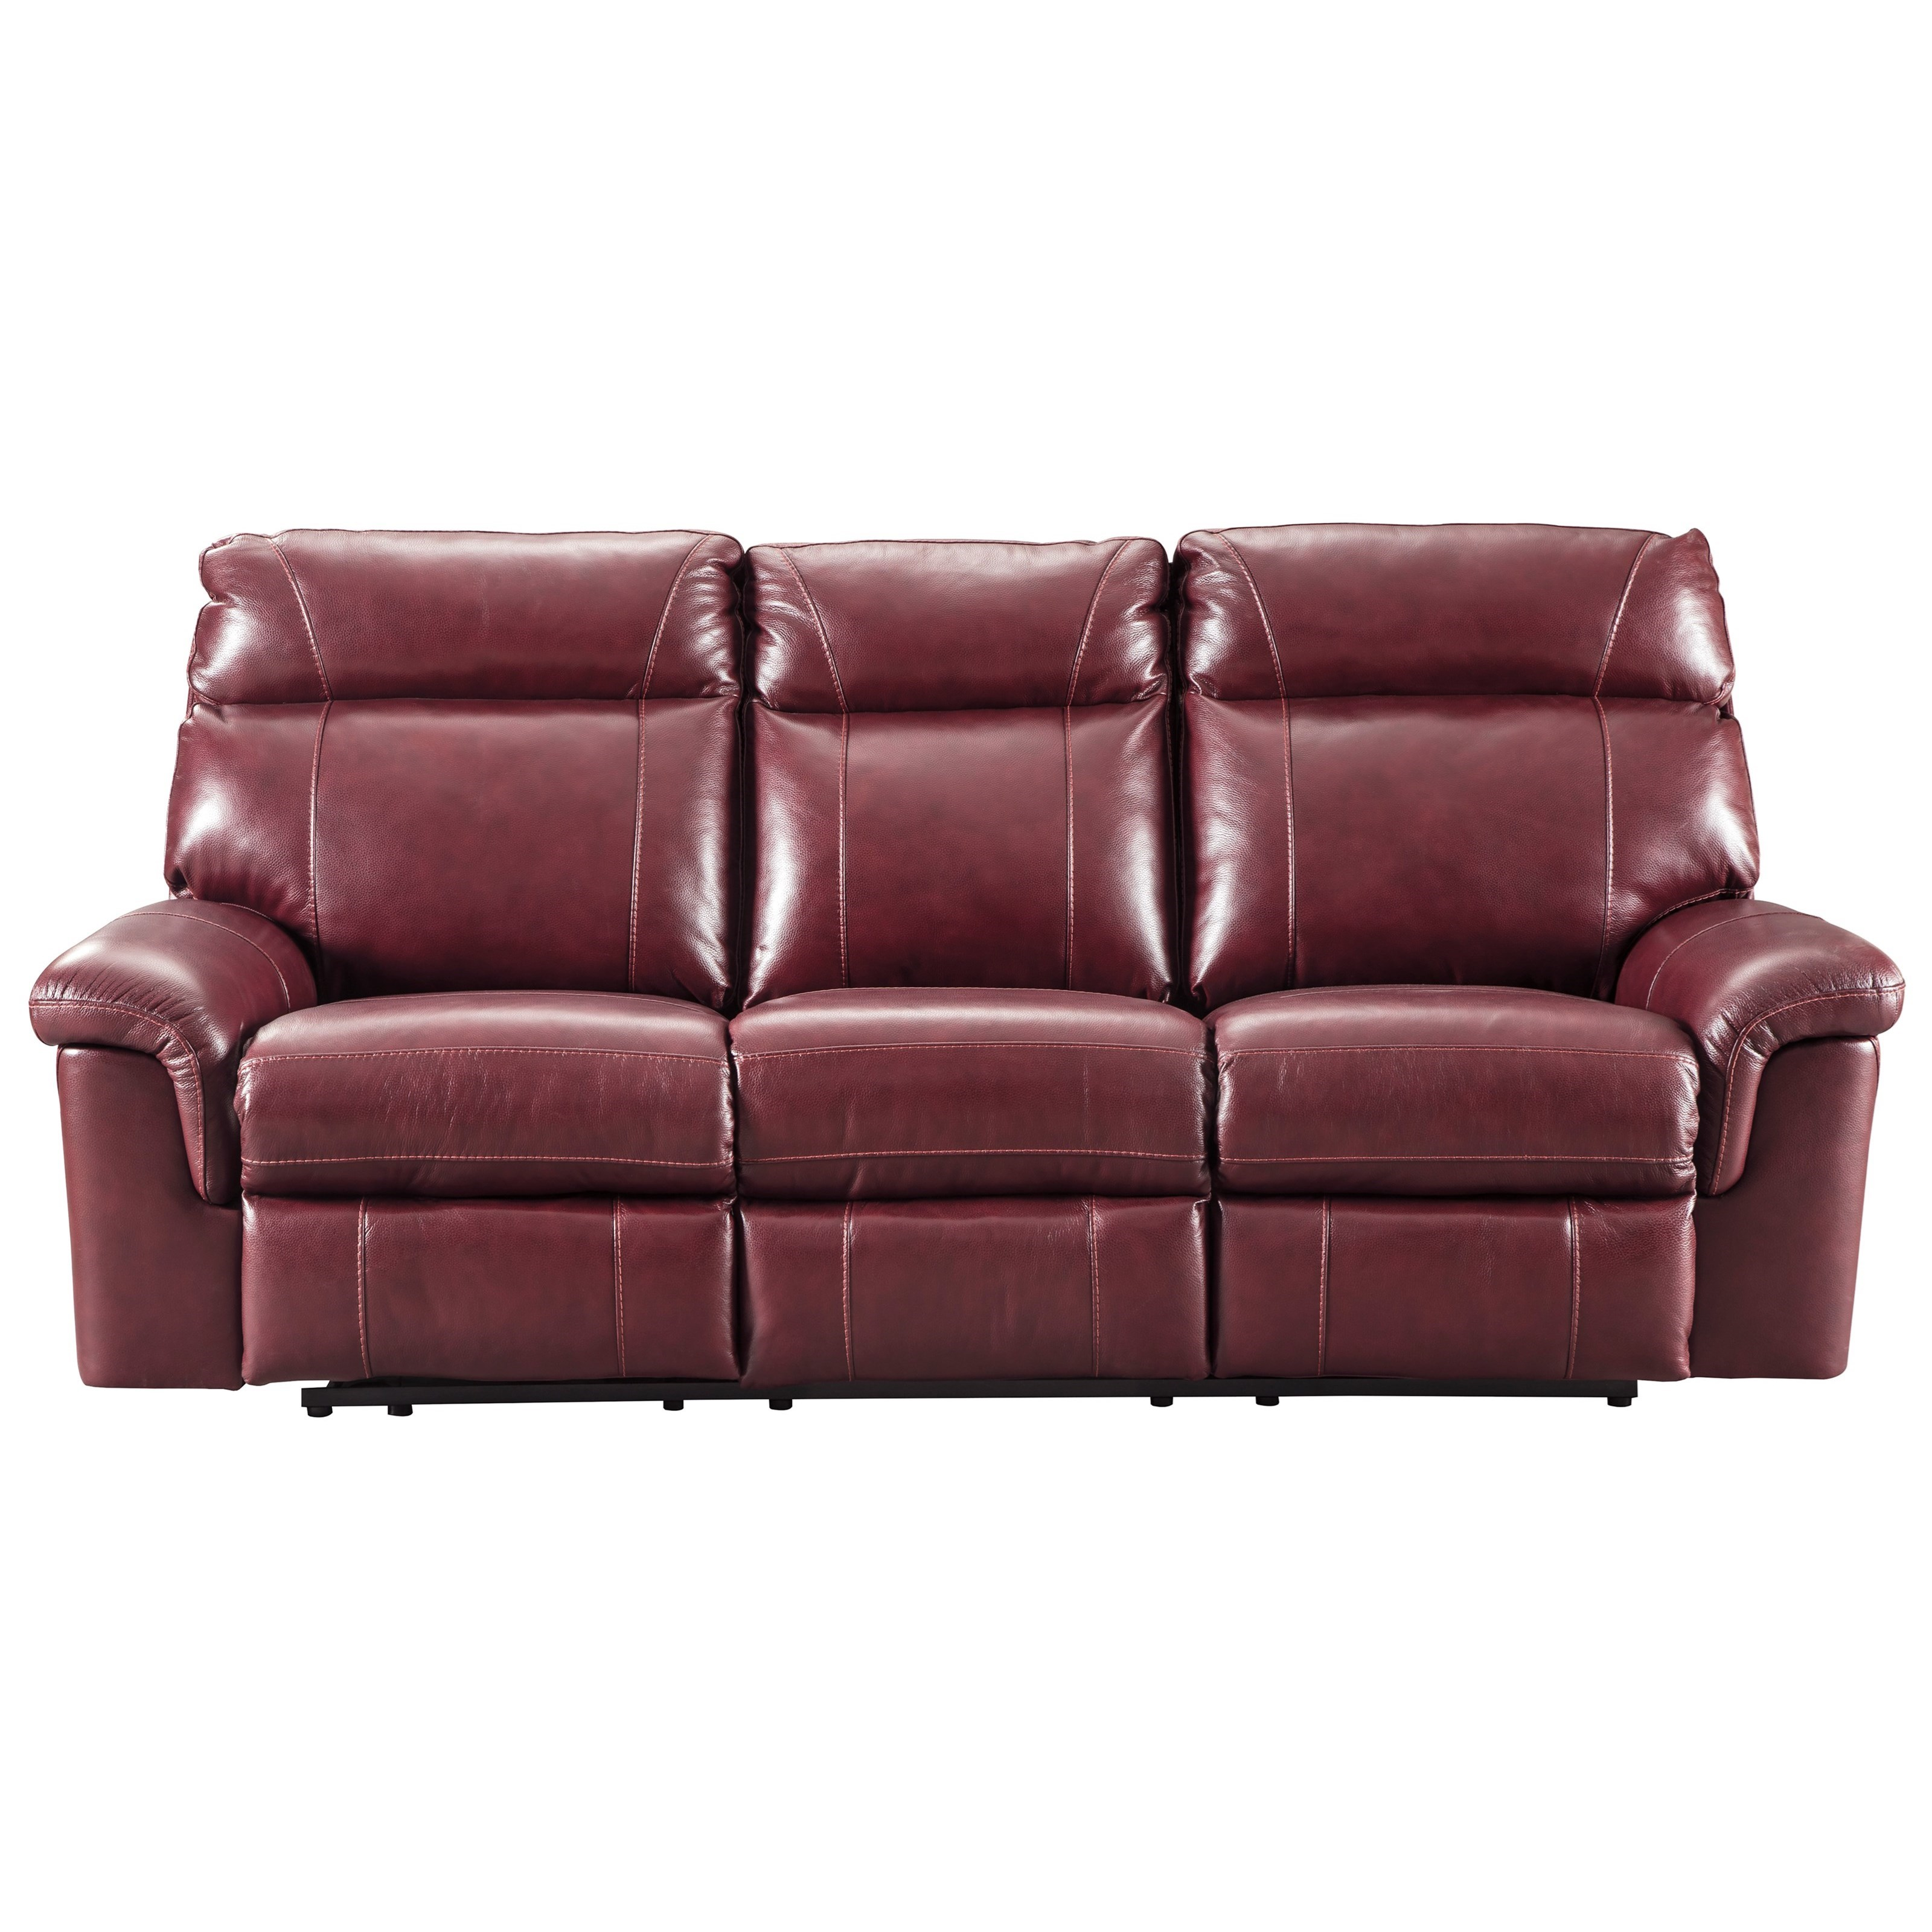 Signature Design by Ashley Duvic Power Reclining Sofa w/ Adjustable Headrests - Item Number: 5620215